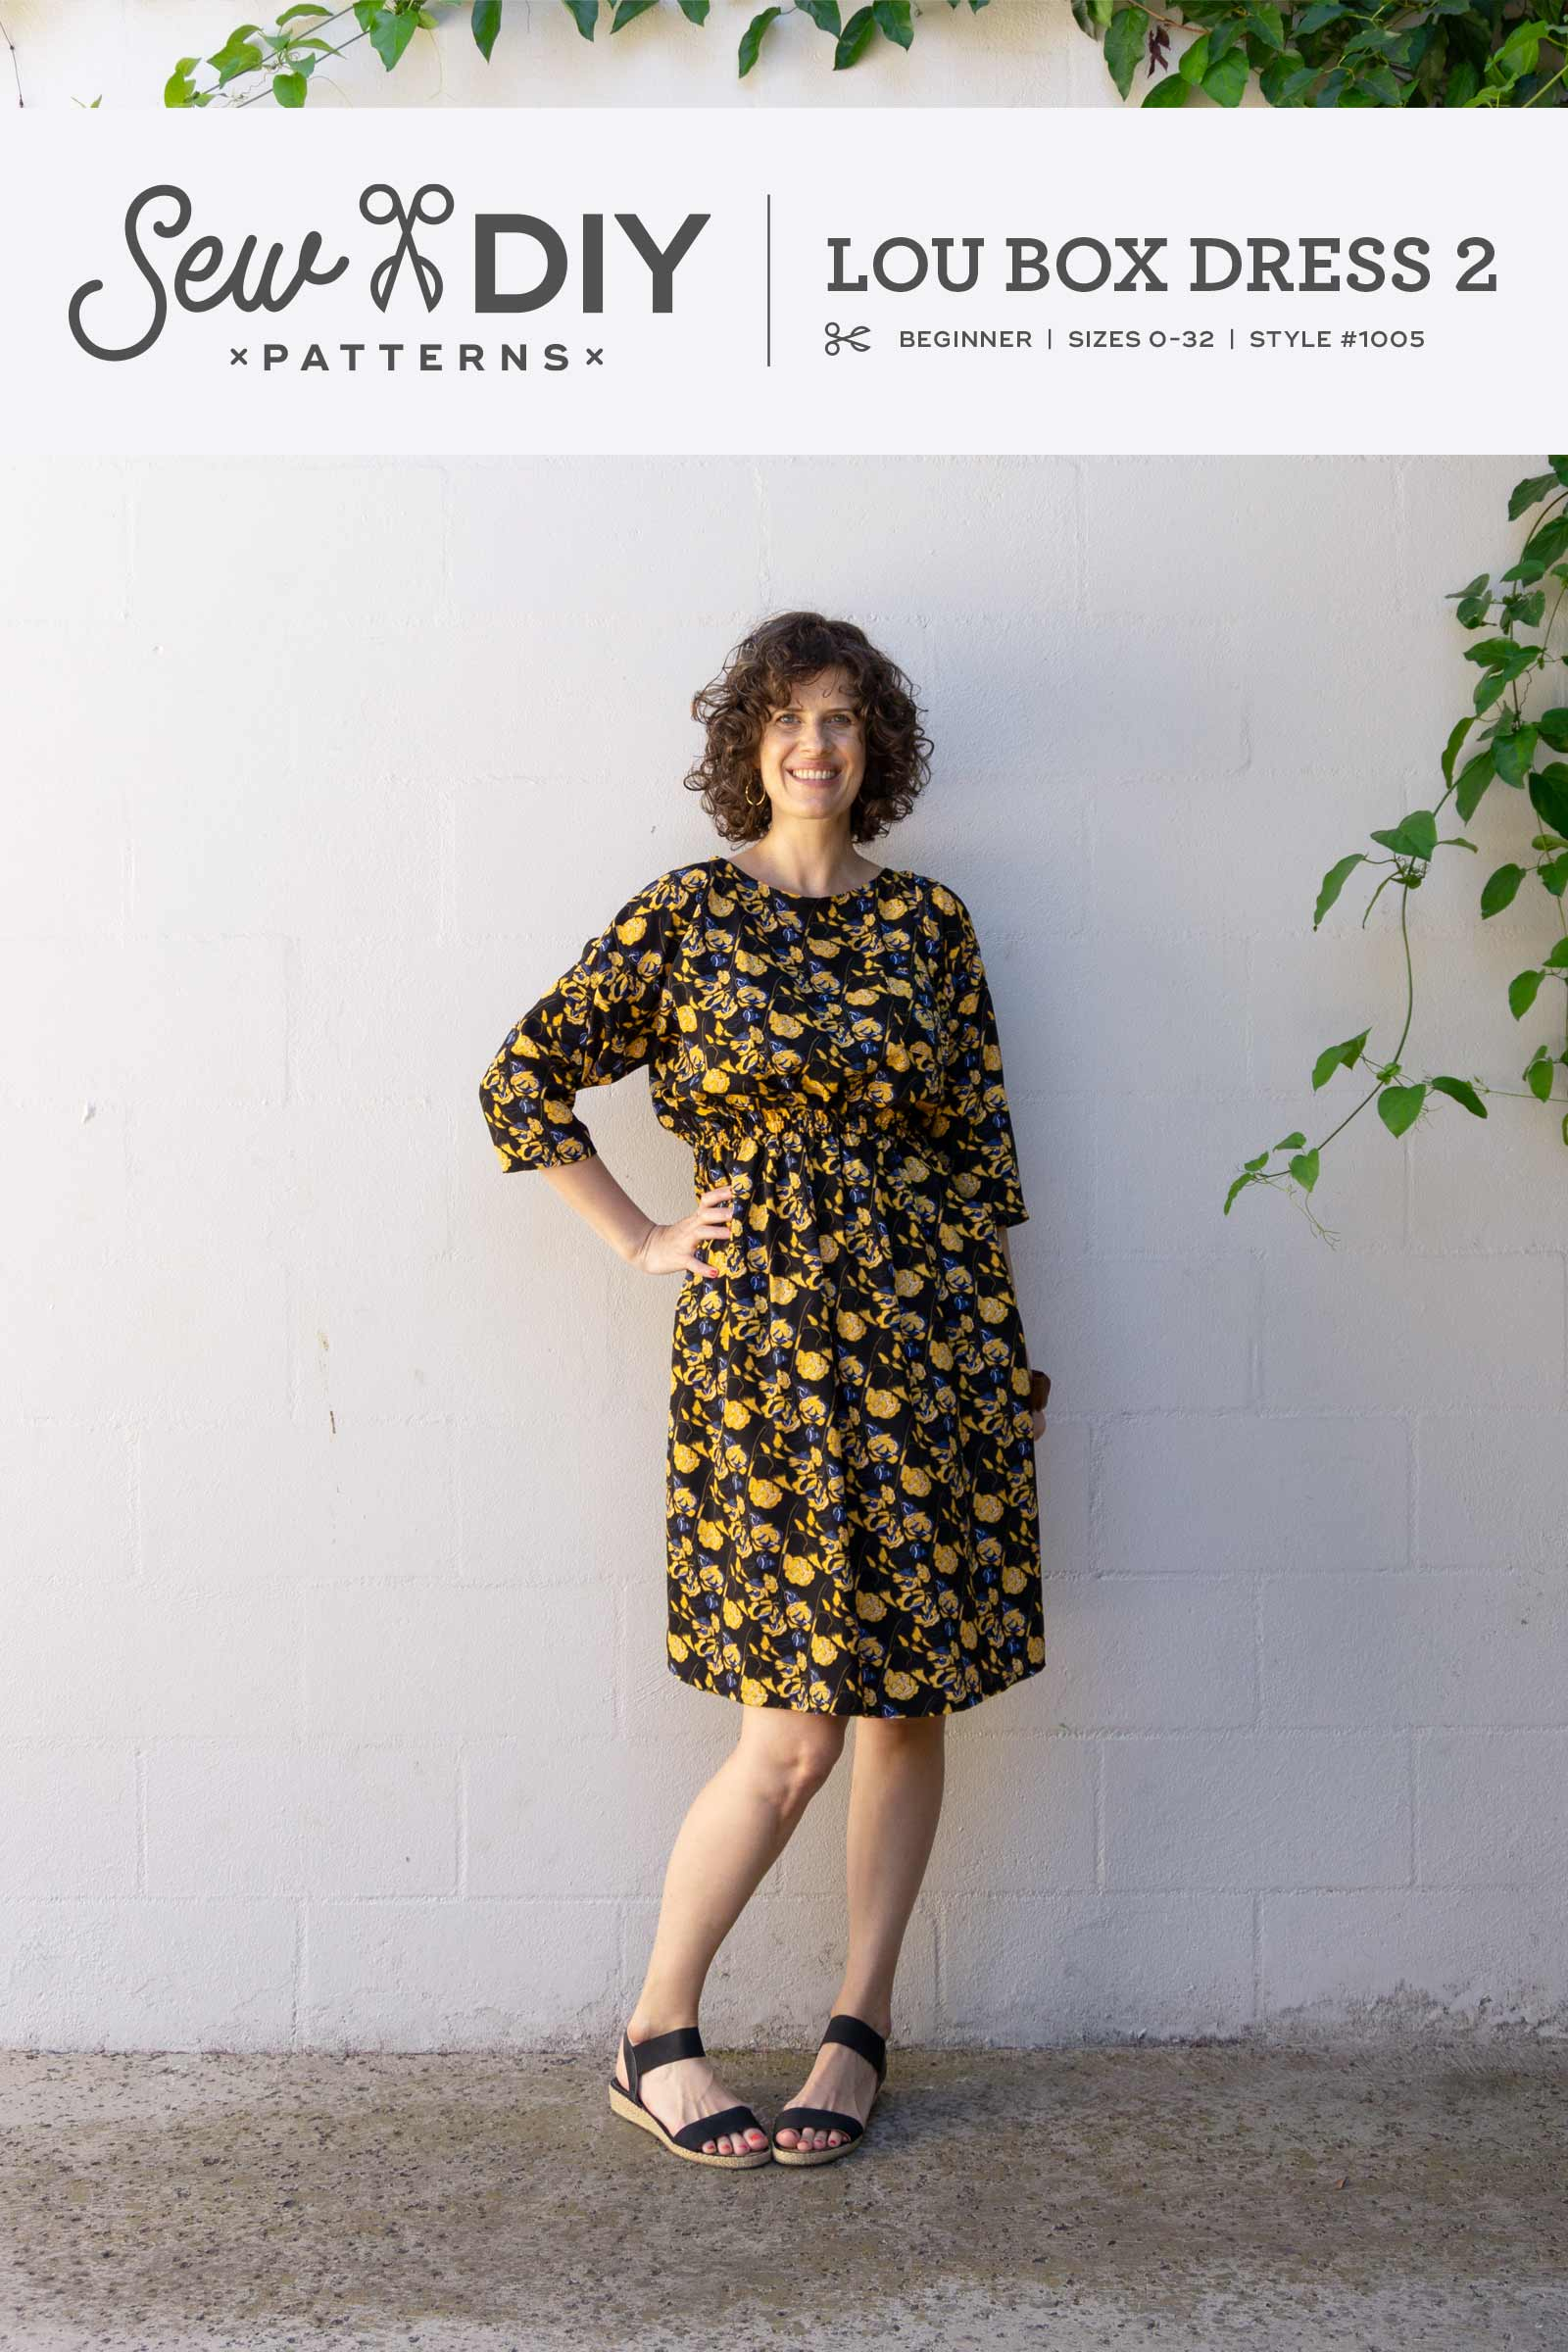 Announcing! The relaunch of the Lou Box Dress 2 pdf sewing pattern